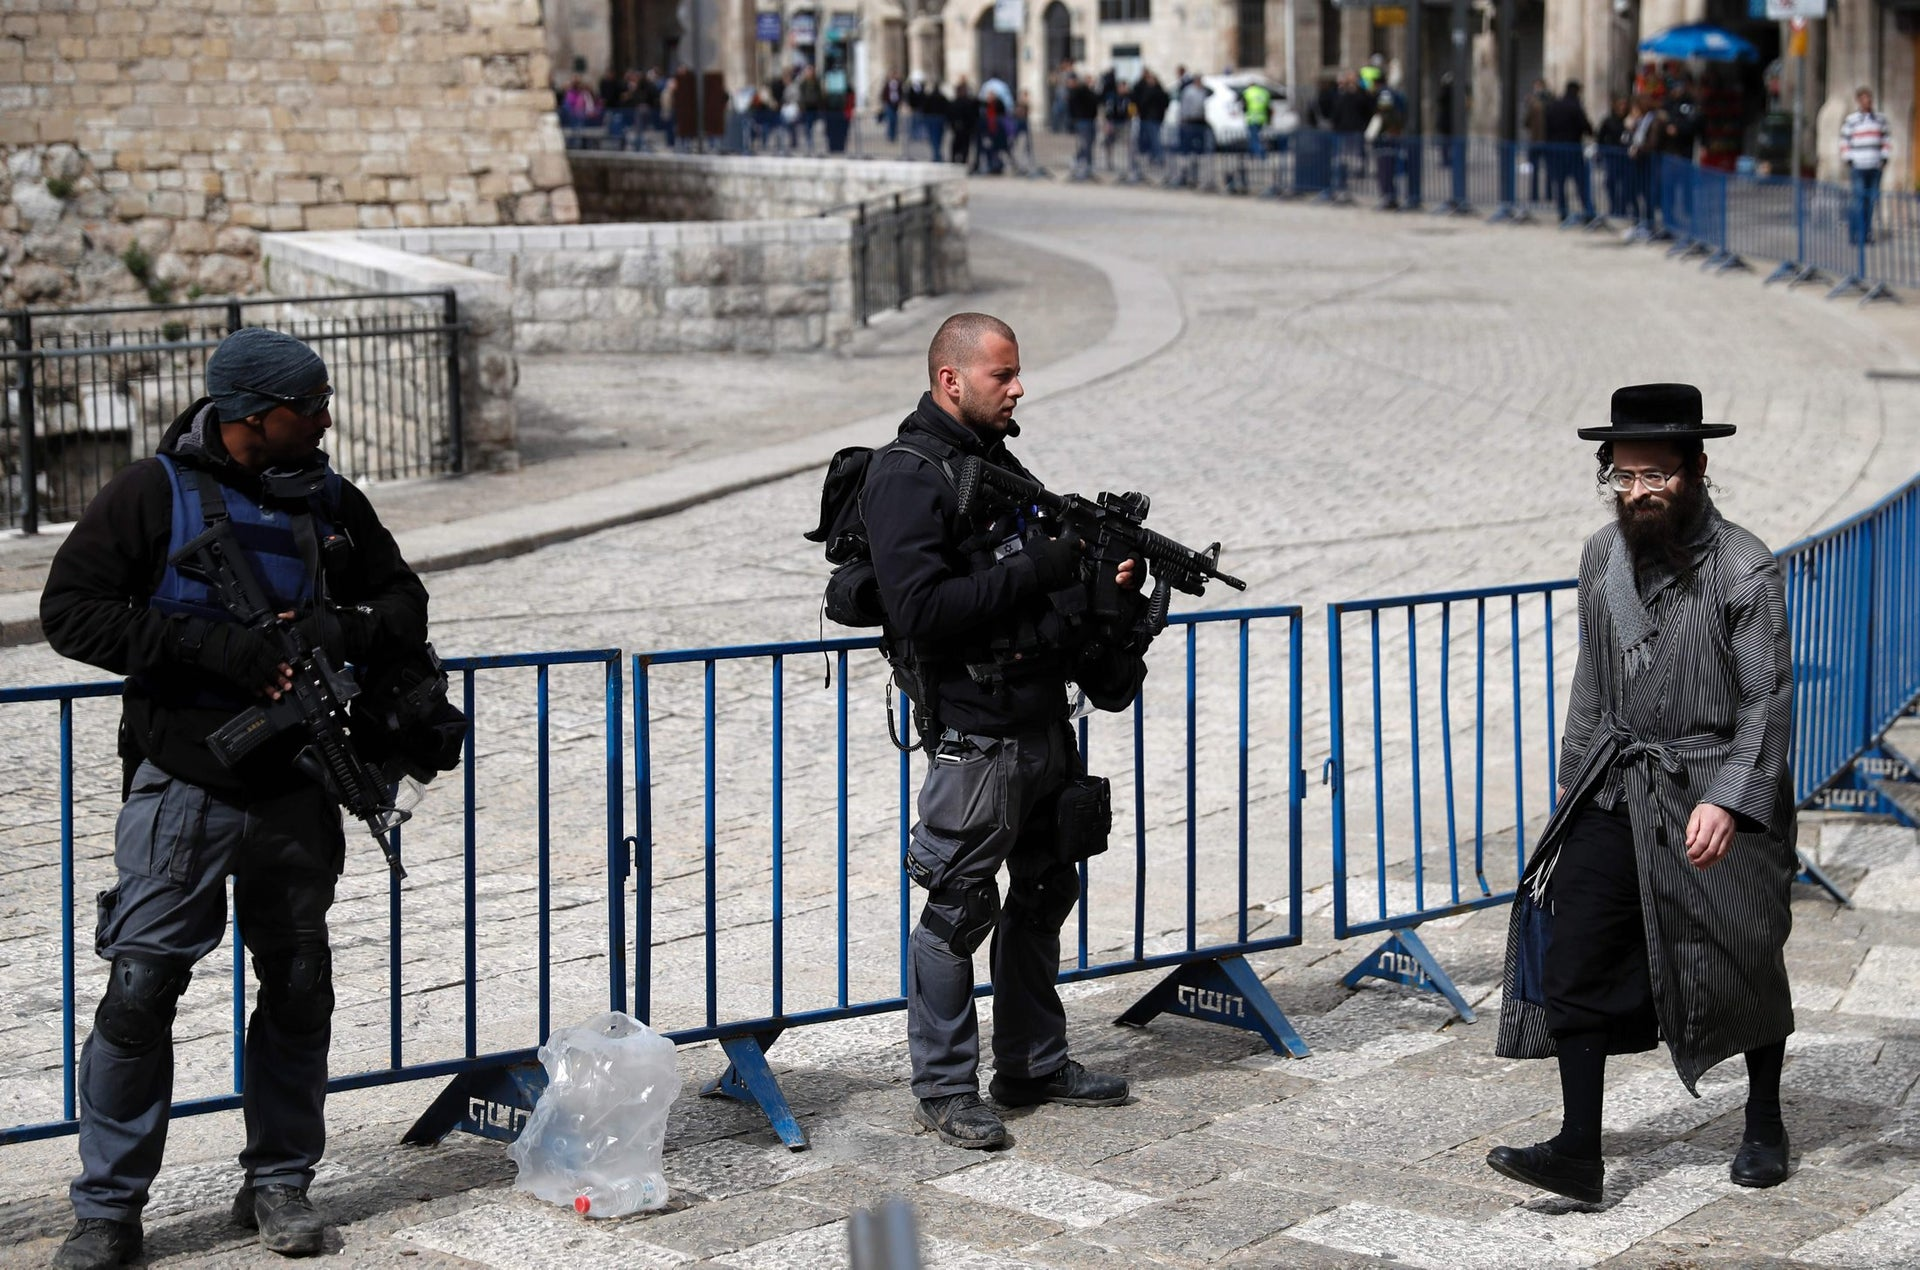 Israeli policemen secure a street at the Jaffa Gate in Jerusalem's Old City during the 6th Jerusalem's marathon, on March 18, 2016.